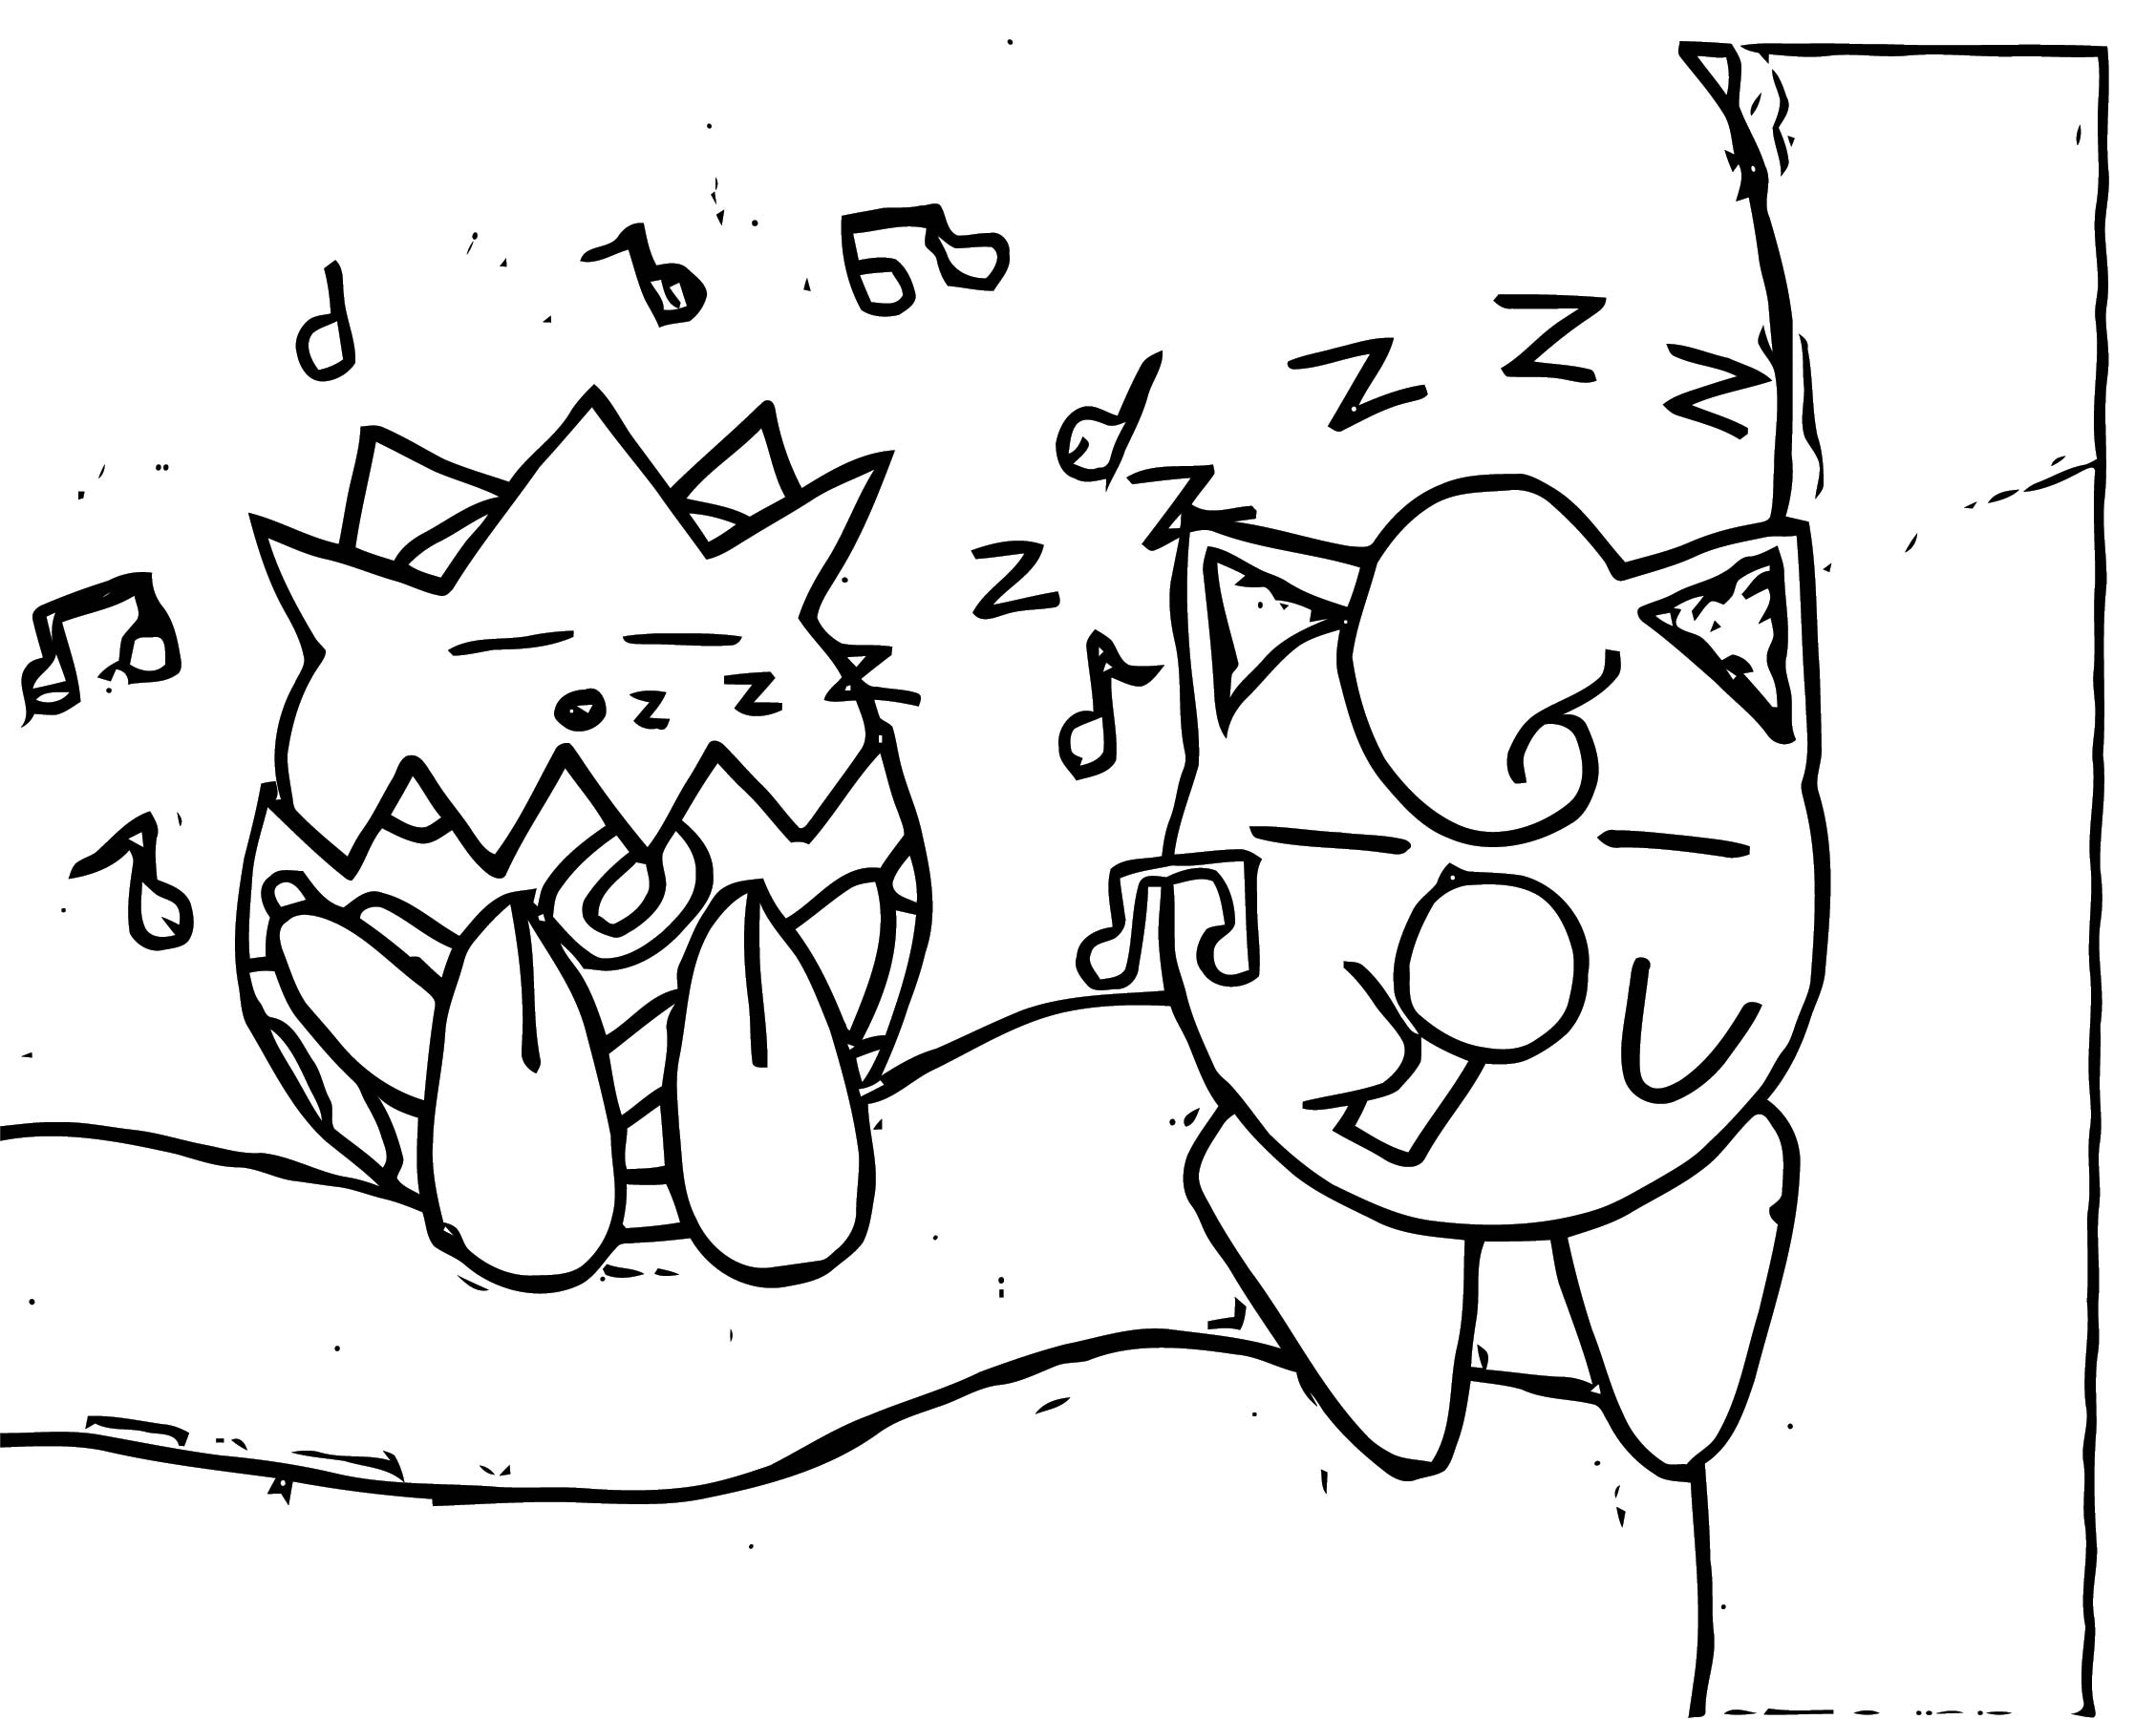 Togepi And Jigglypuff Coloring Page